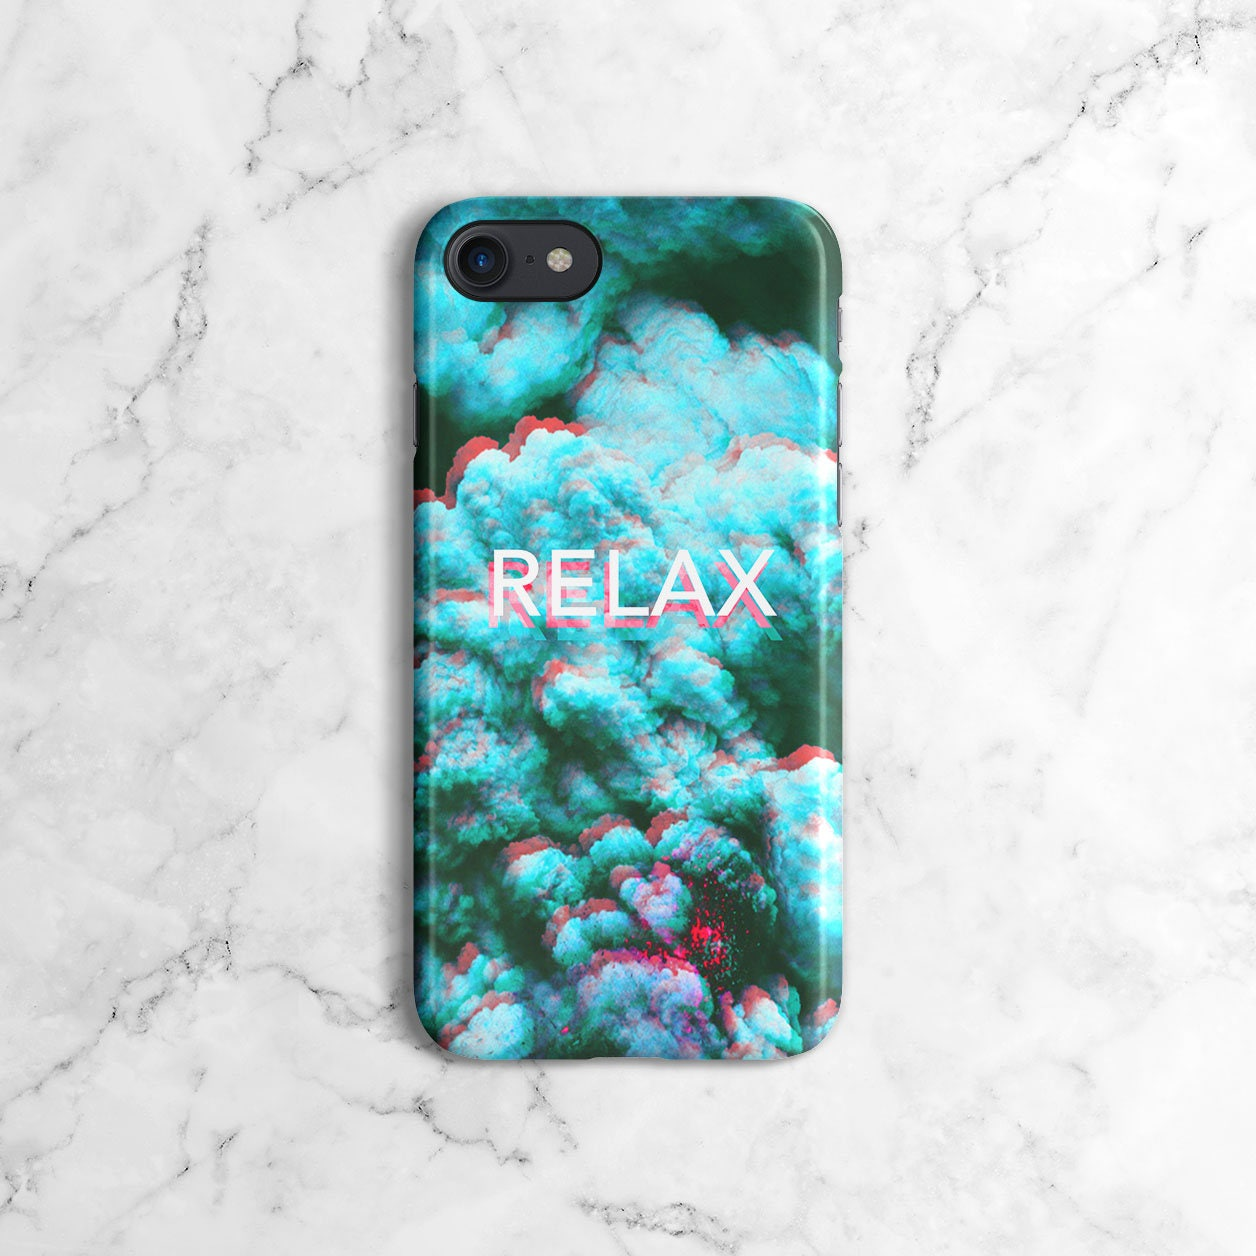 trippy blue smoke relax tumblr phone case for iphone 6 6s. Black Bedroom Furniture Sets. Home Design Ideas